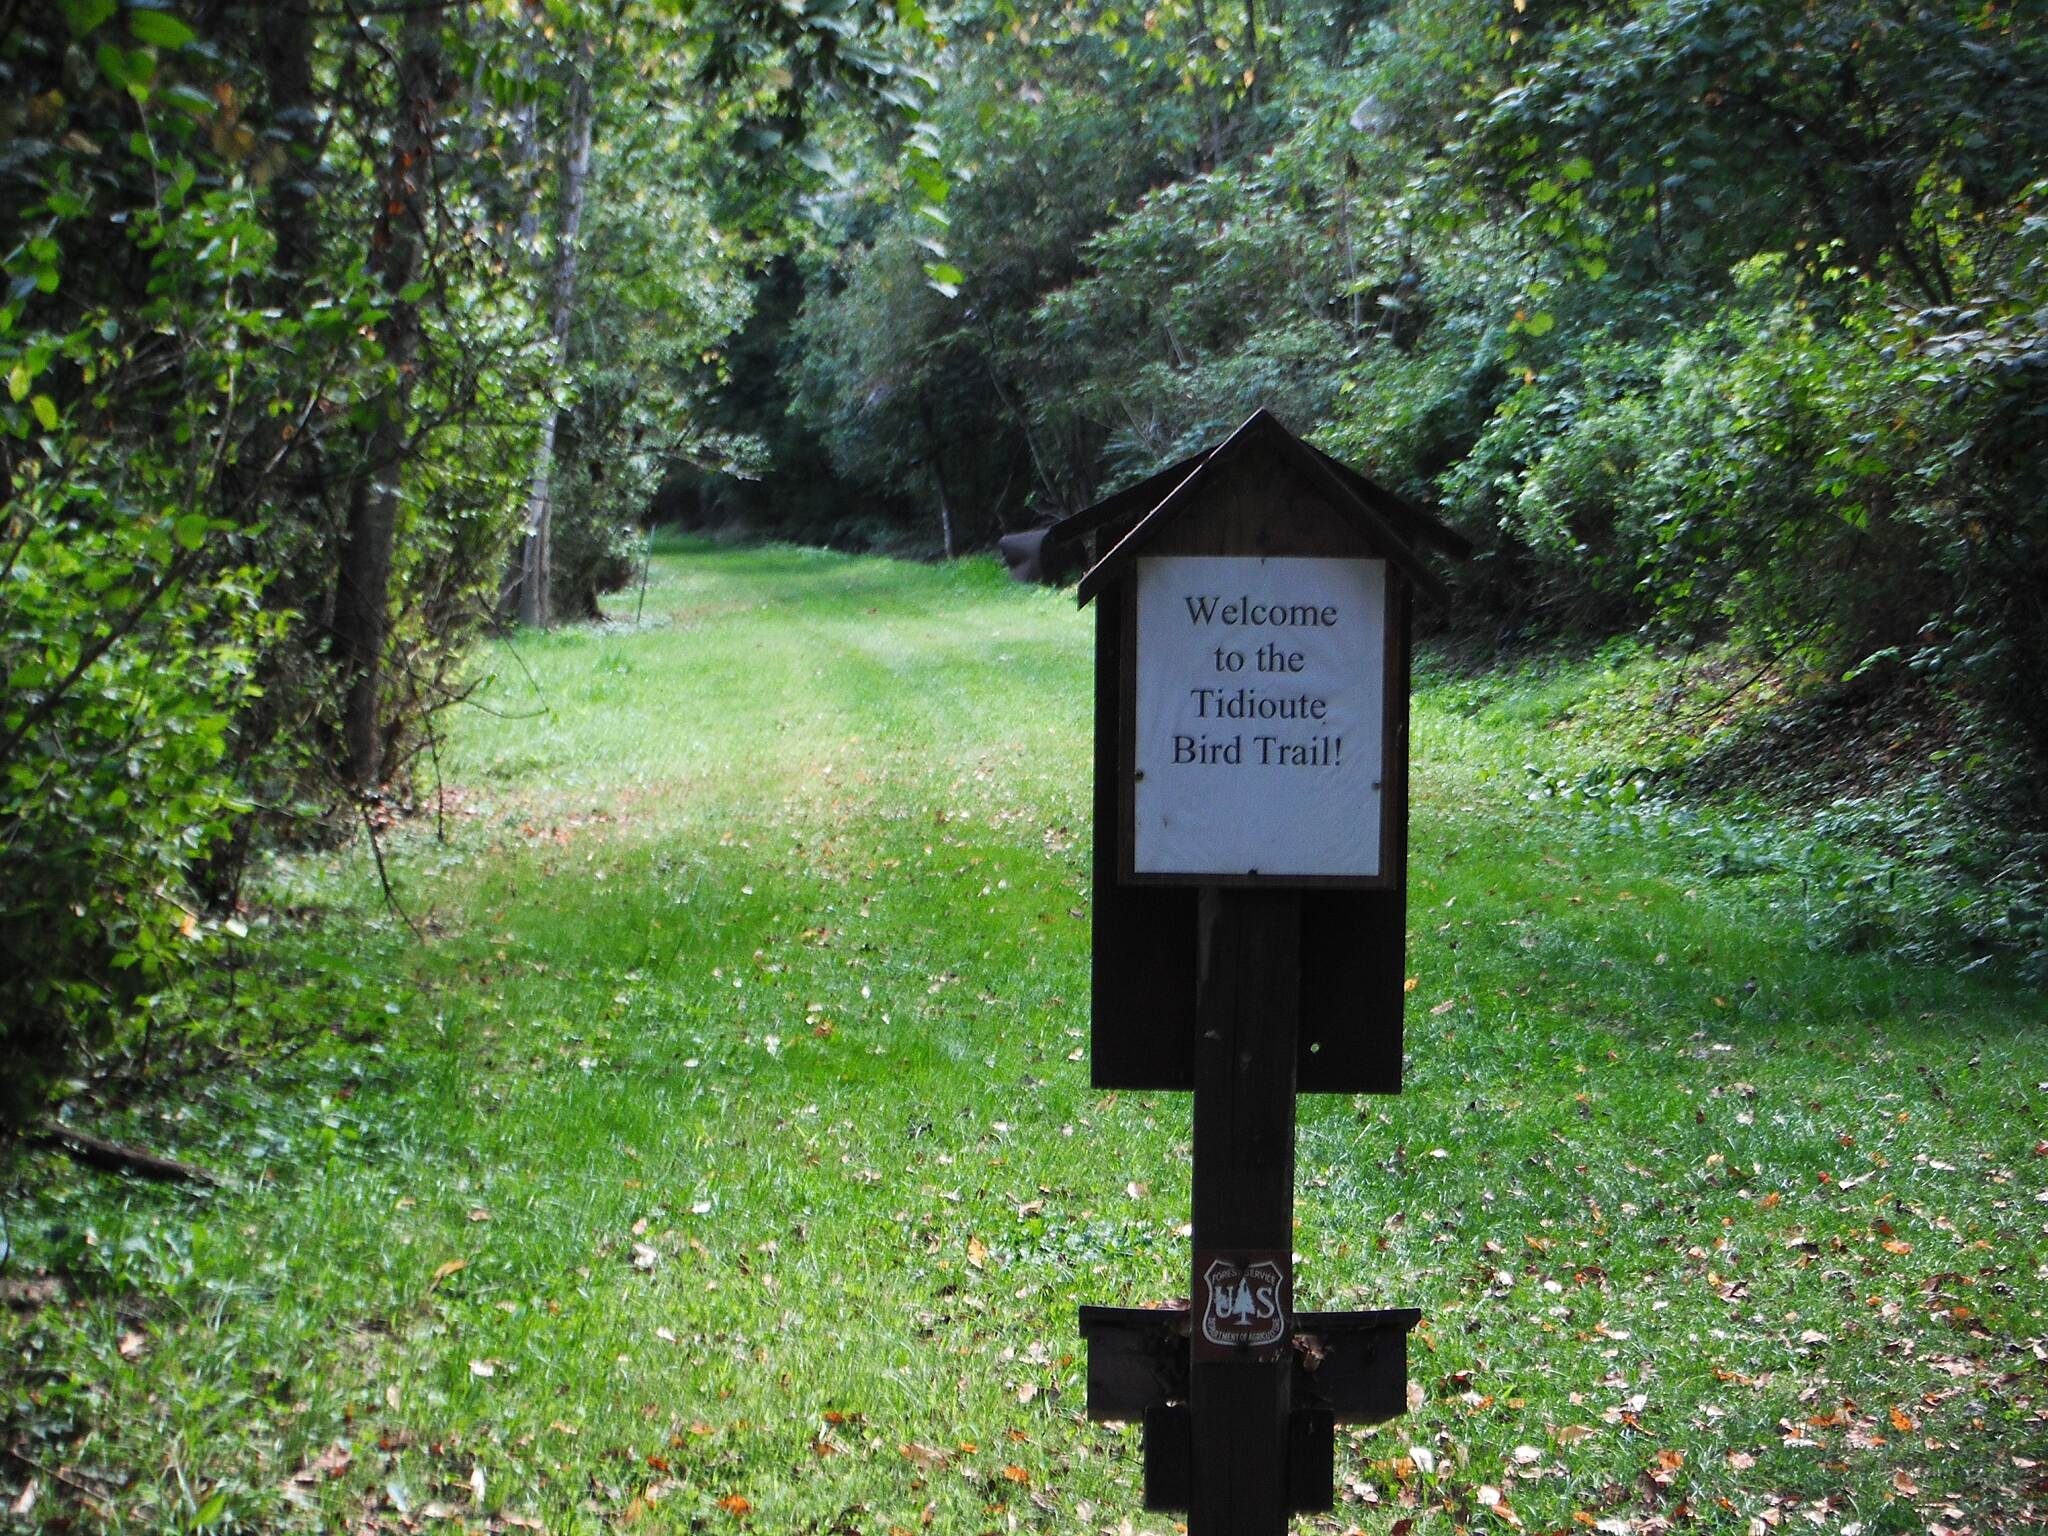 Allegheny National Forest - Tidioute Riverside RecTrek Trail  Tidioute Trek and Rec Trail AKA the Tidioute Bird Trail.  Most of the trail is in the Allegheny National Forest.